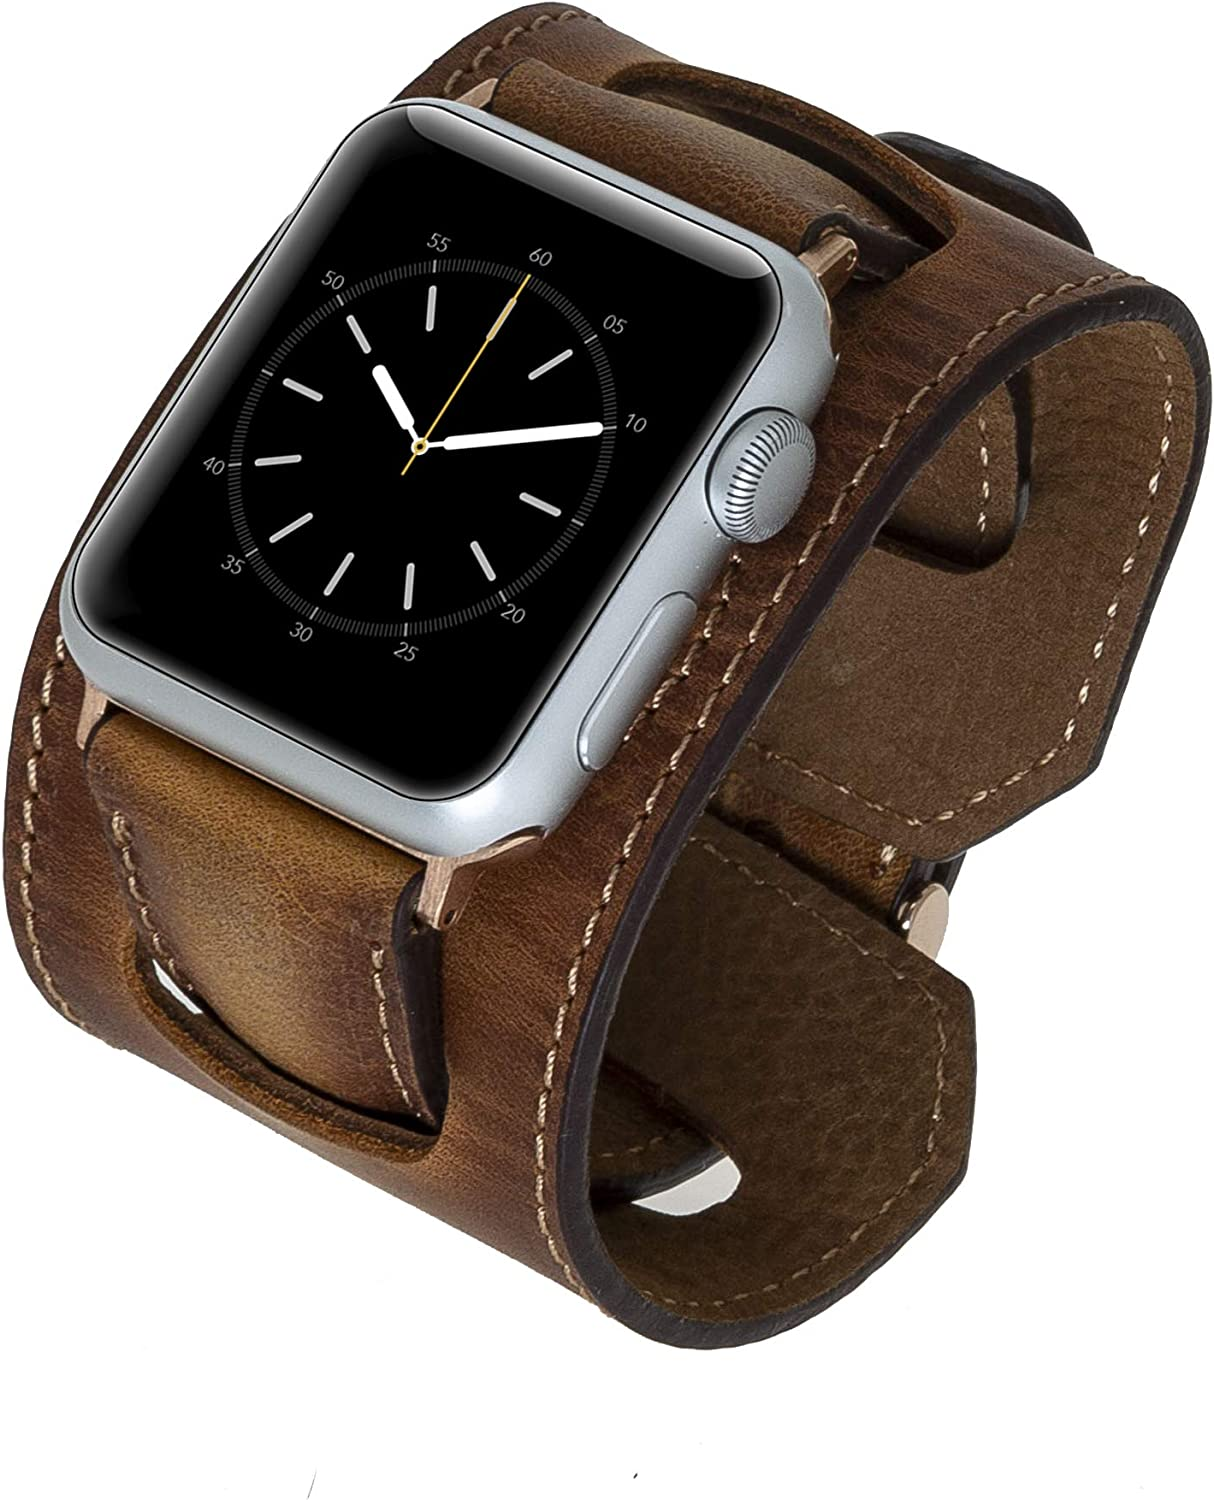 Venito Ancona Cuff Leather Watch Band Compatible with Apple Watch iwatch Series 1,2,3,4,5,6, and SE (Antique Brown w/Rose Gold Connector&Clasp, 42mm-44mm)